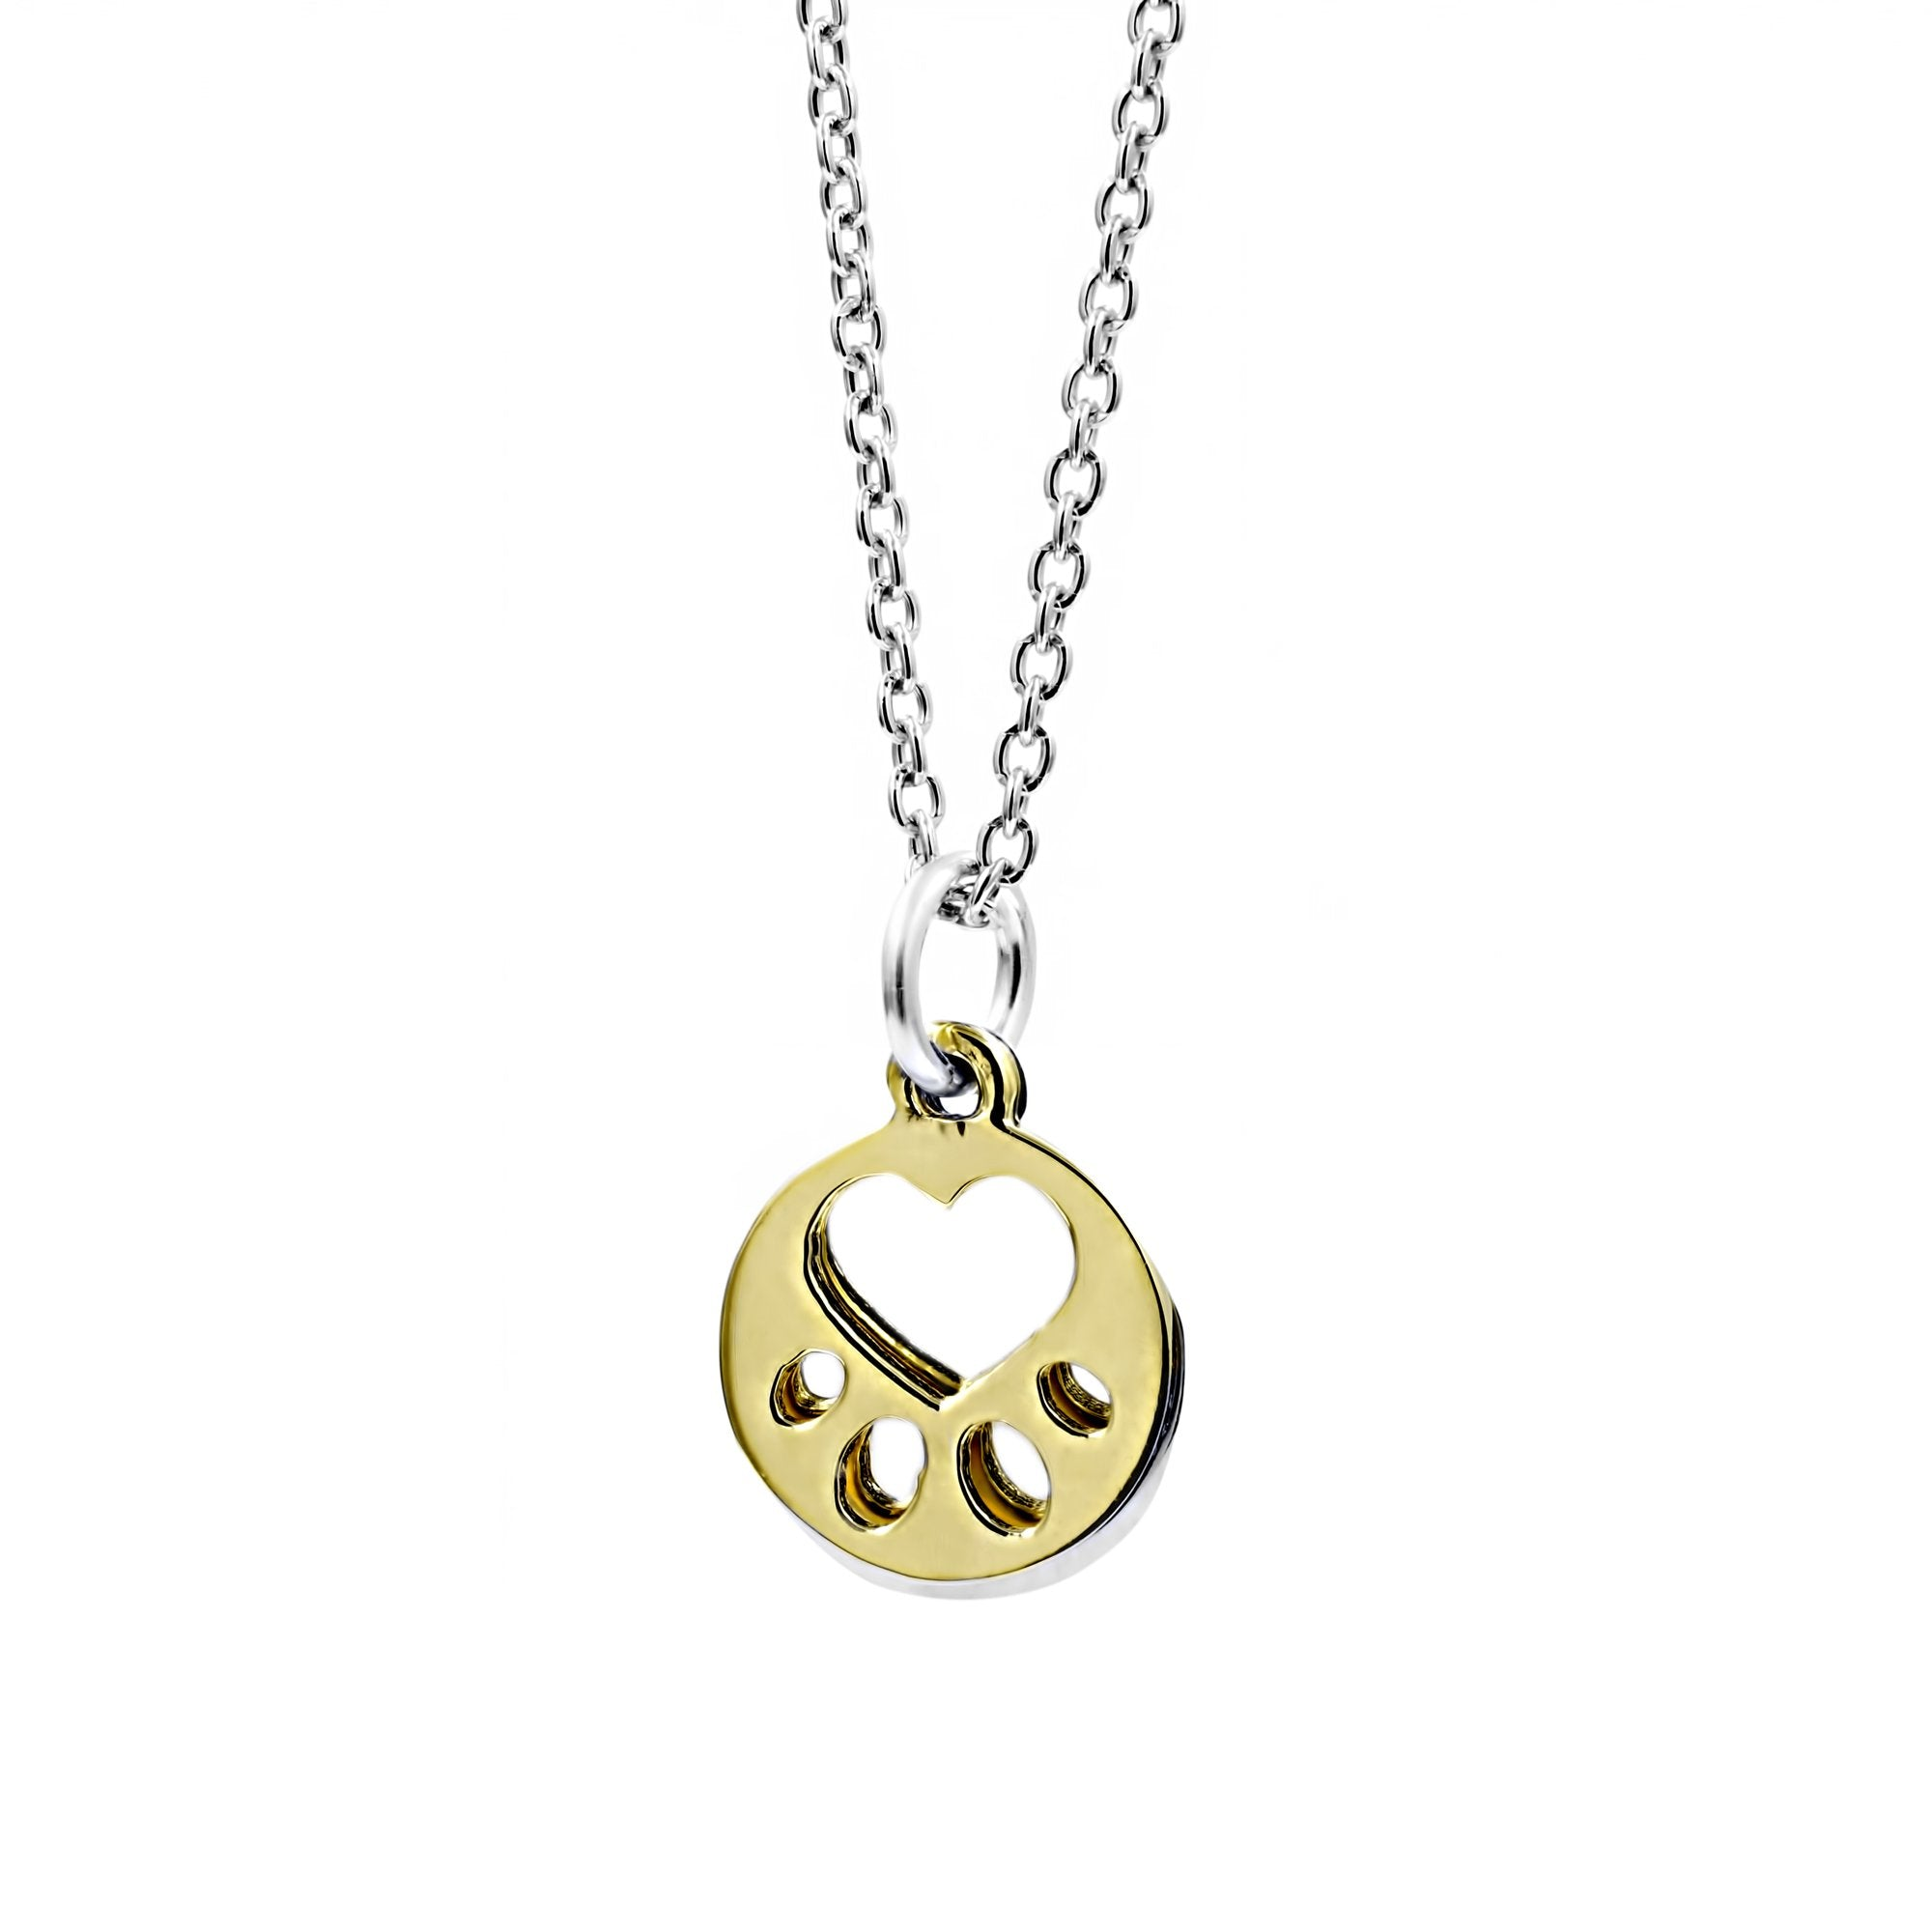 Our Cause for Paws 14k Gold and Sterling Silver Small Paw Pendant Necklace